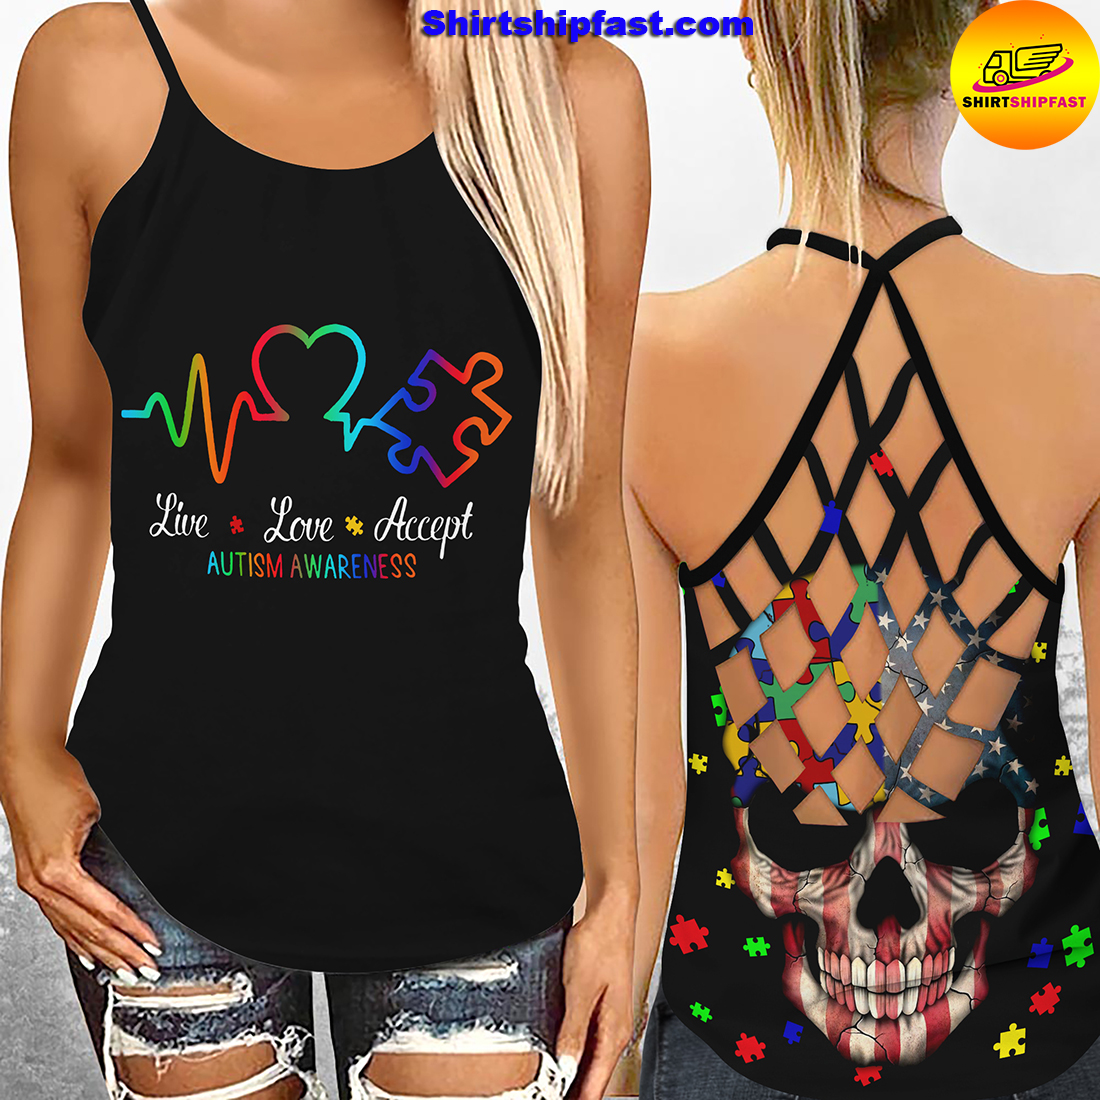 Live love accept autism awareness criss-cross open back camisole tank top and leggings